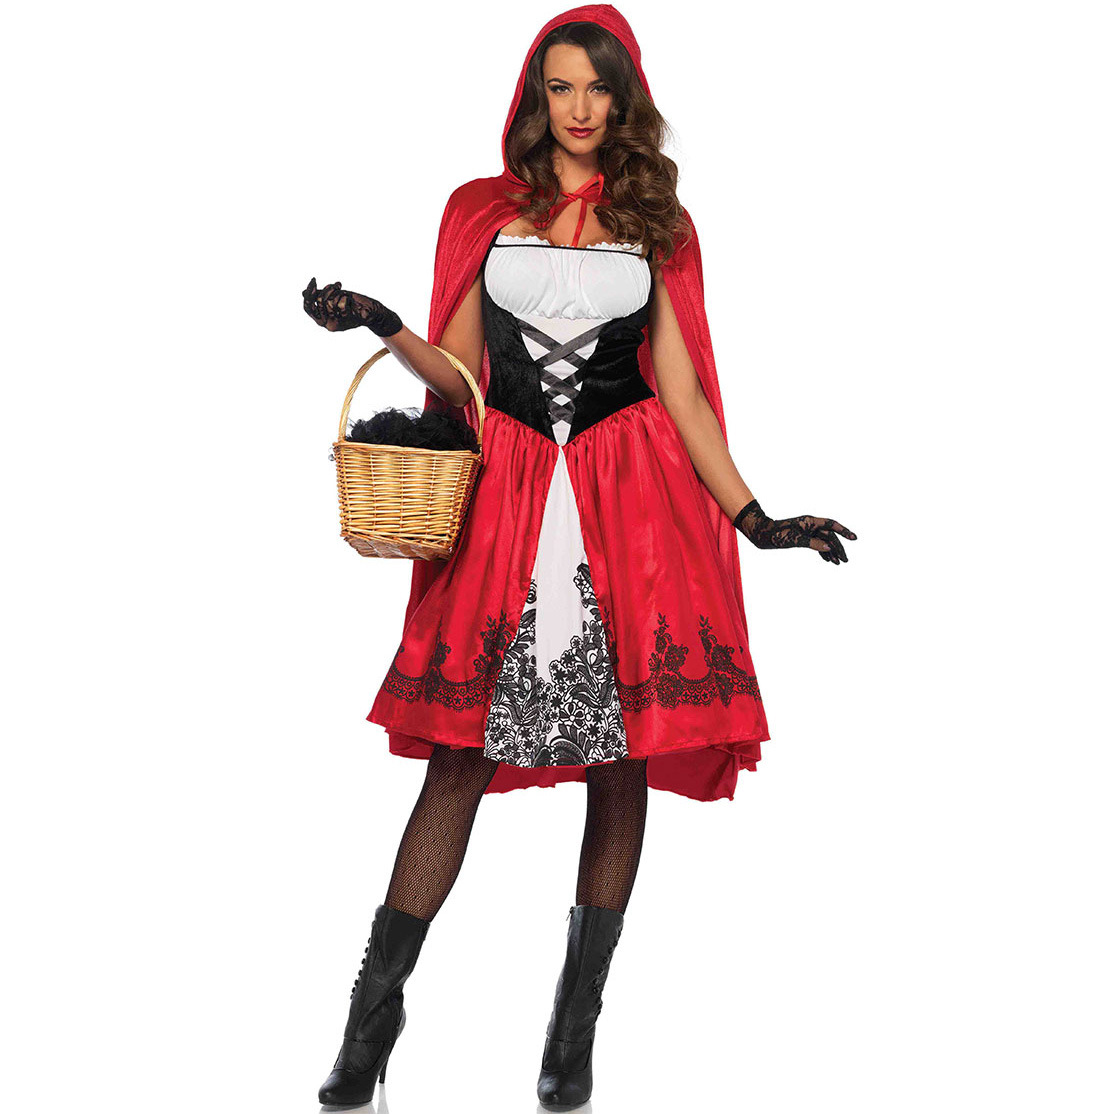 S-3xl Plus Size Little Red Riding Hood Costume Halloween Cape Fairy Tale Girl Dress Cloak Cosplay Role Playing Game Uniform